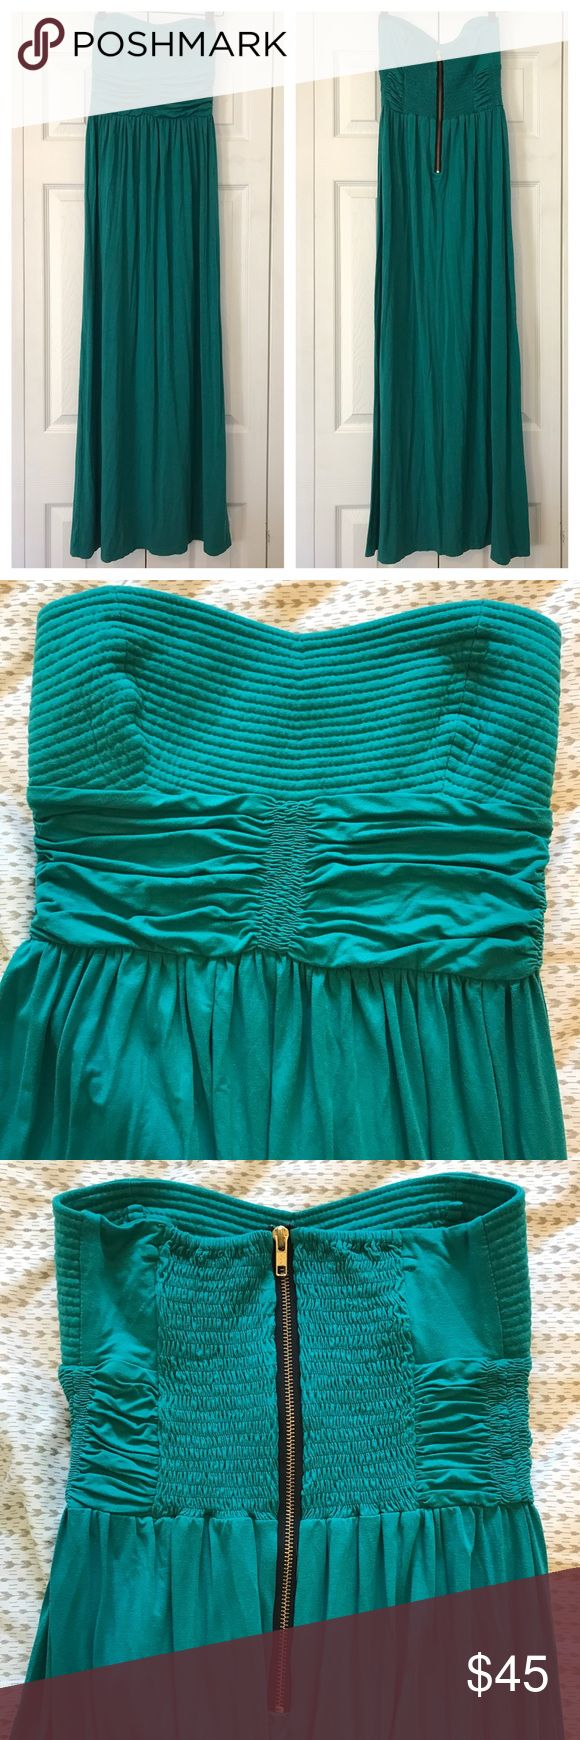 Bel Kazan Teal Maxi Dress Bel Kazan teal maxi dress • Jersey stretchy fabric • Back zipper • Rouched waist • Woven bodice • Tiny tear on inner layer that is not visible from the outside of dress and has never caused me problems • Size small Bel Kazan Dresses Maxi